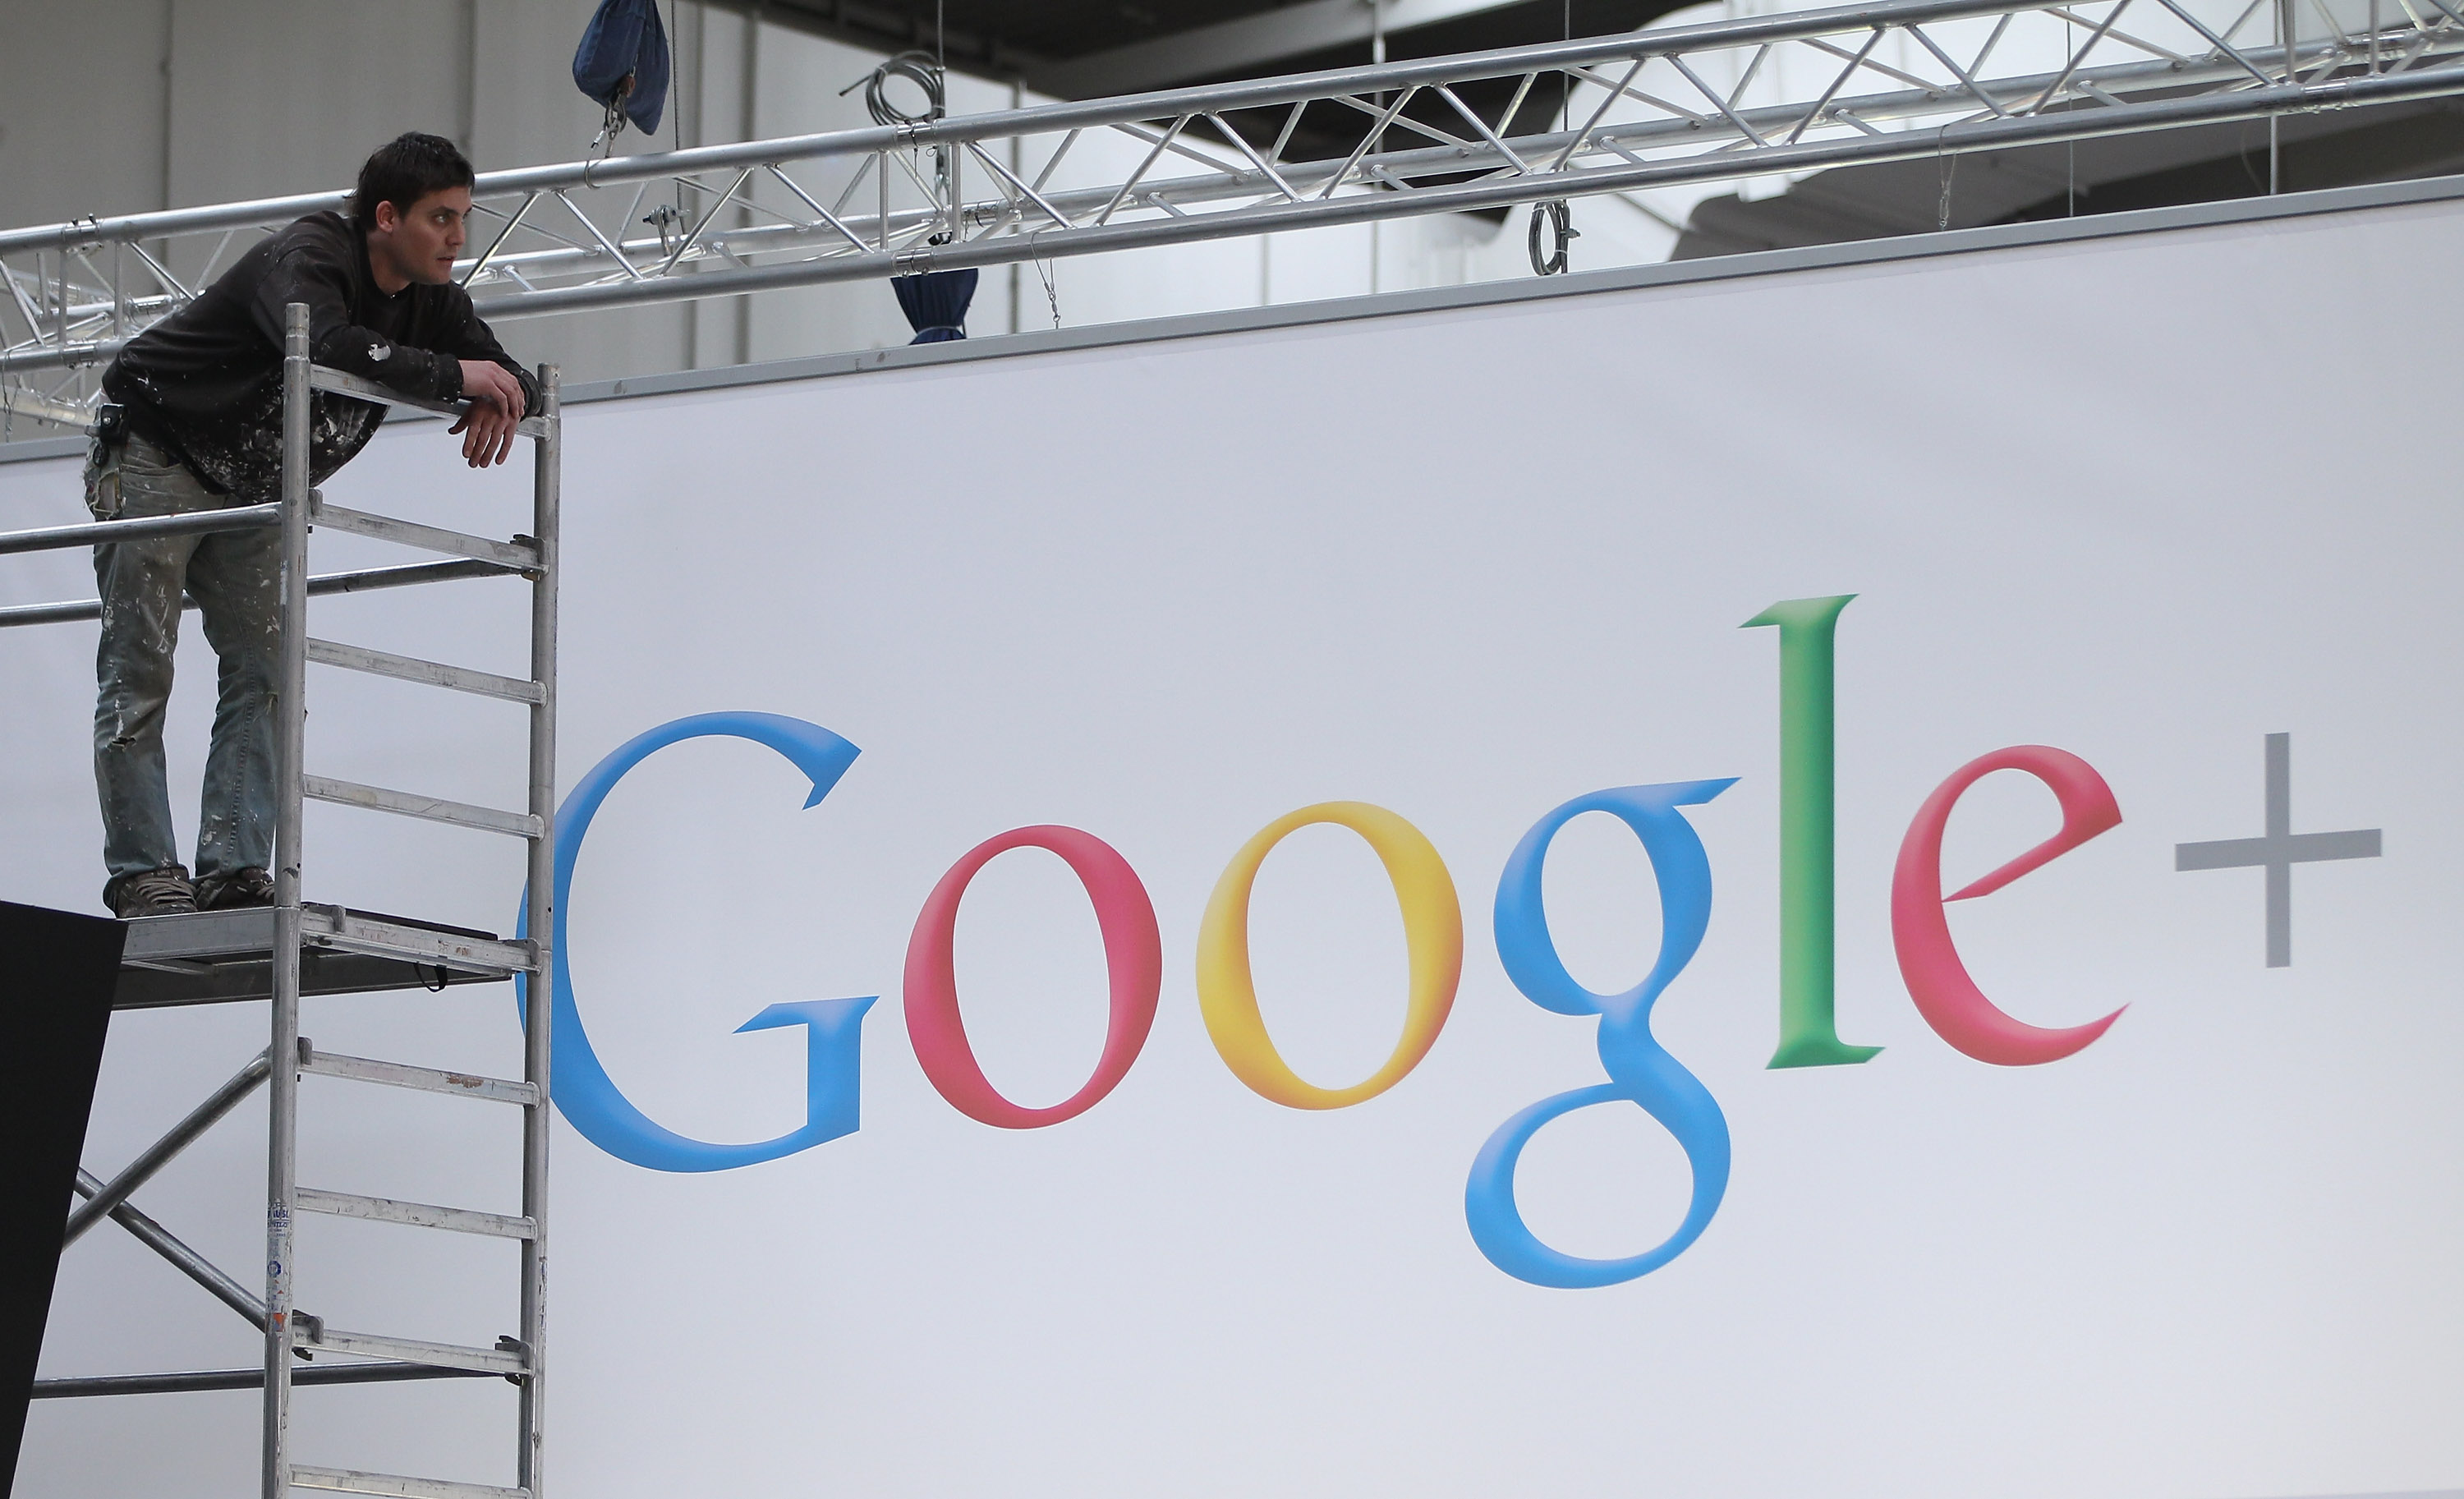 A worker prepares the Google stand the day before the CeBIT 2012 technology trade fair officially opens to the public on March 5, 2012 in Hanover, Germany.